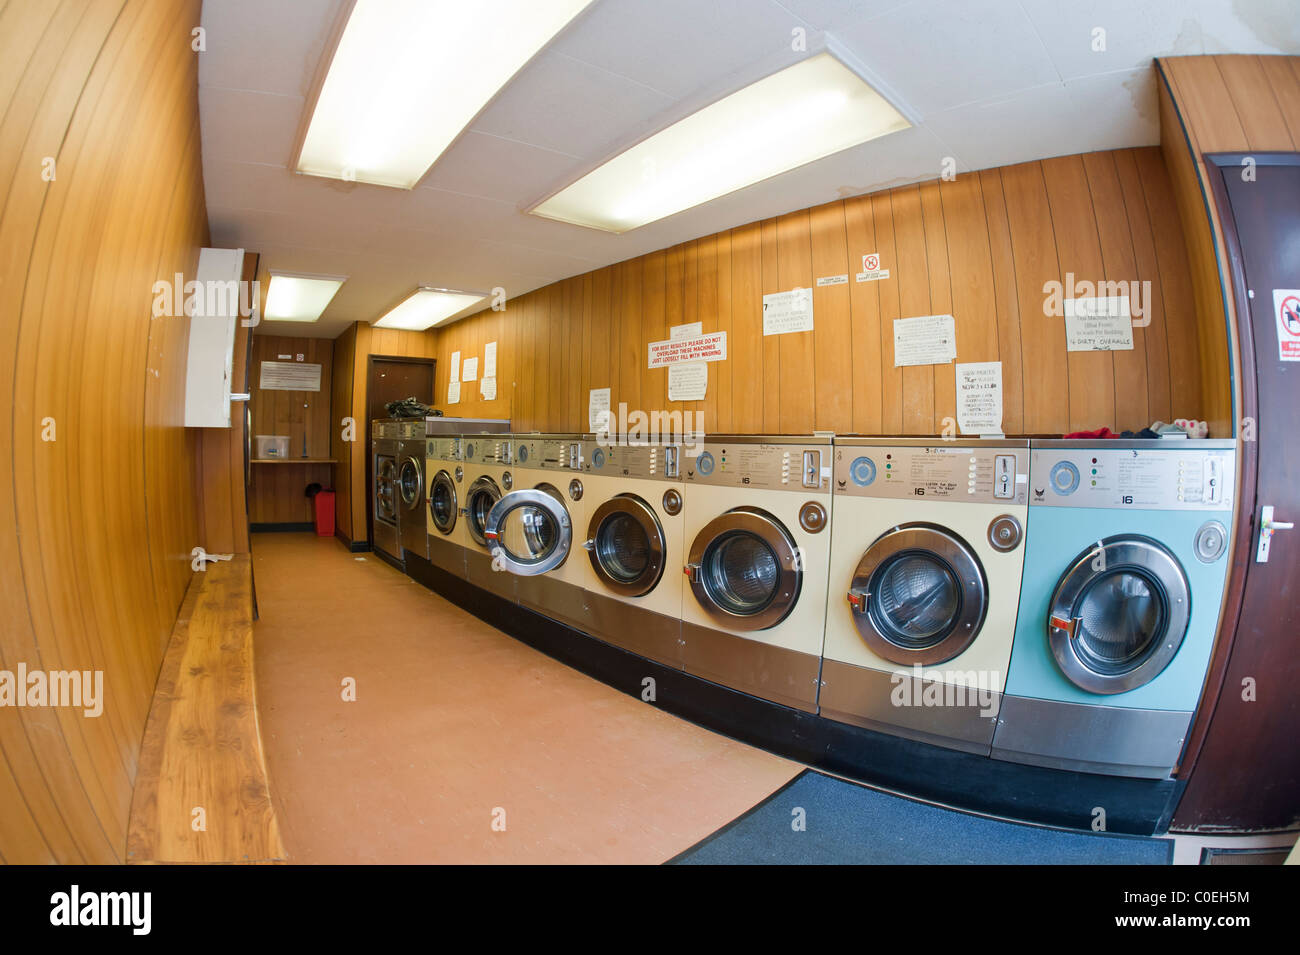 A laundrette with commercial washing machines in the Uk - Stock Image